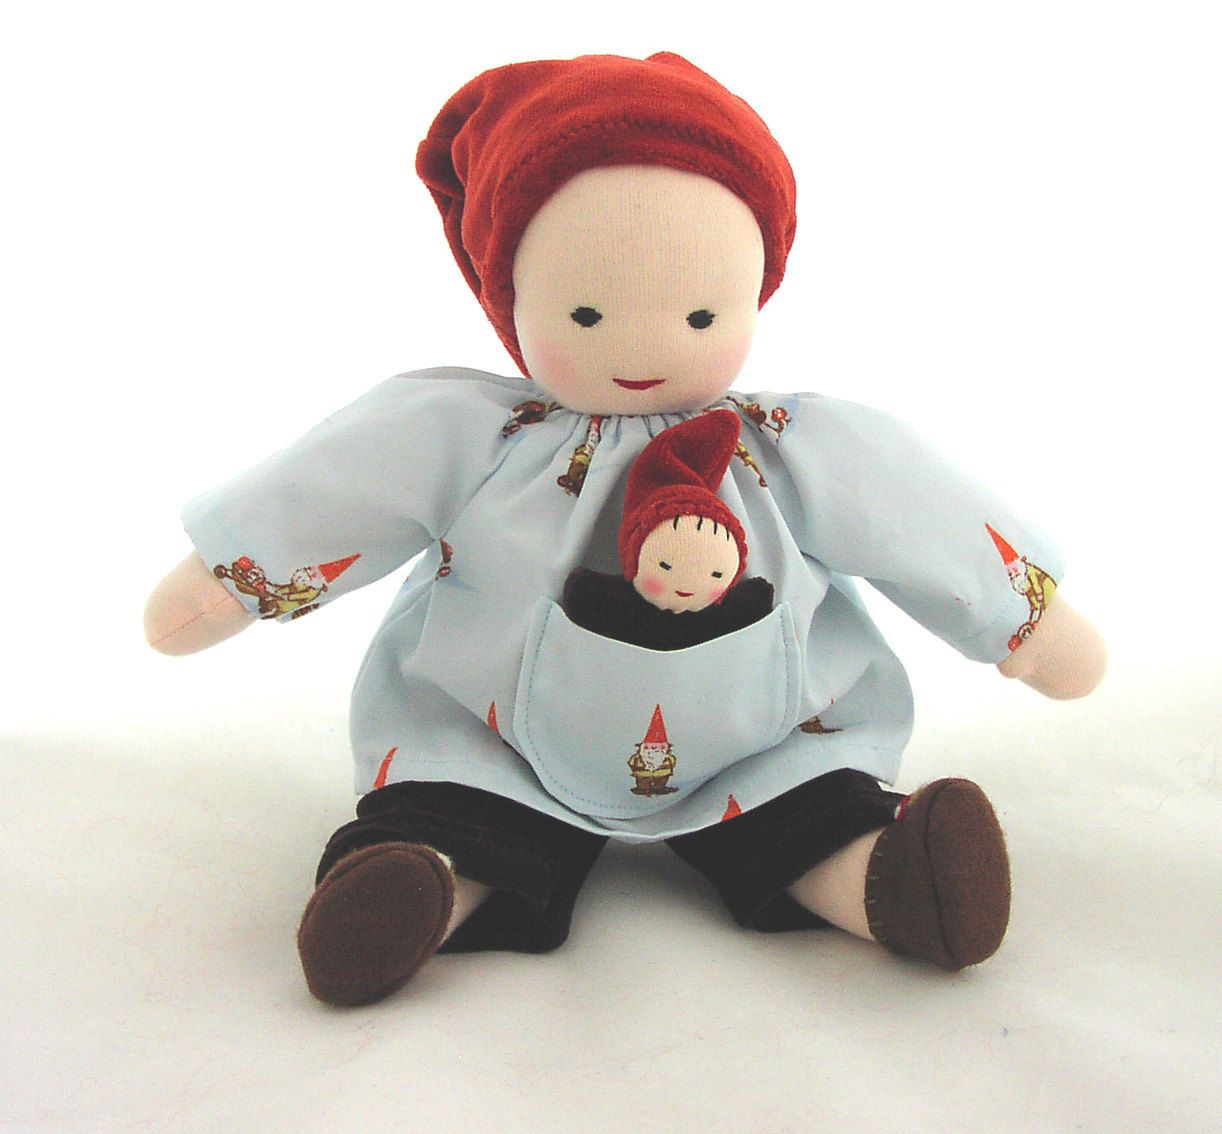 Doll toys images  GermanDolls  inch Gnome Doll with Pocket Baby Waldorf Toy